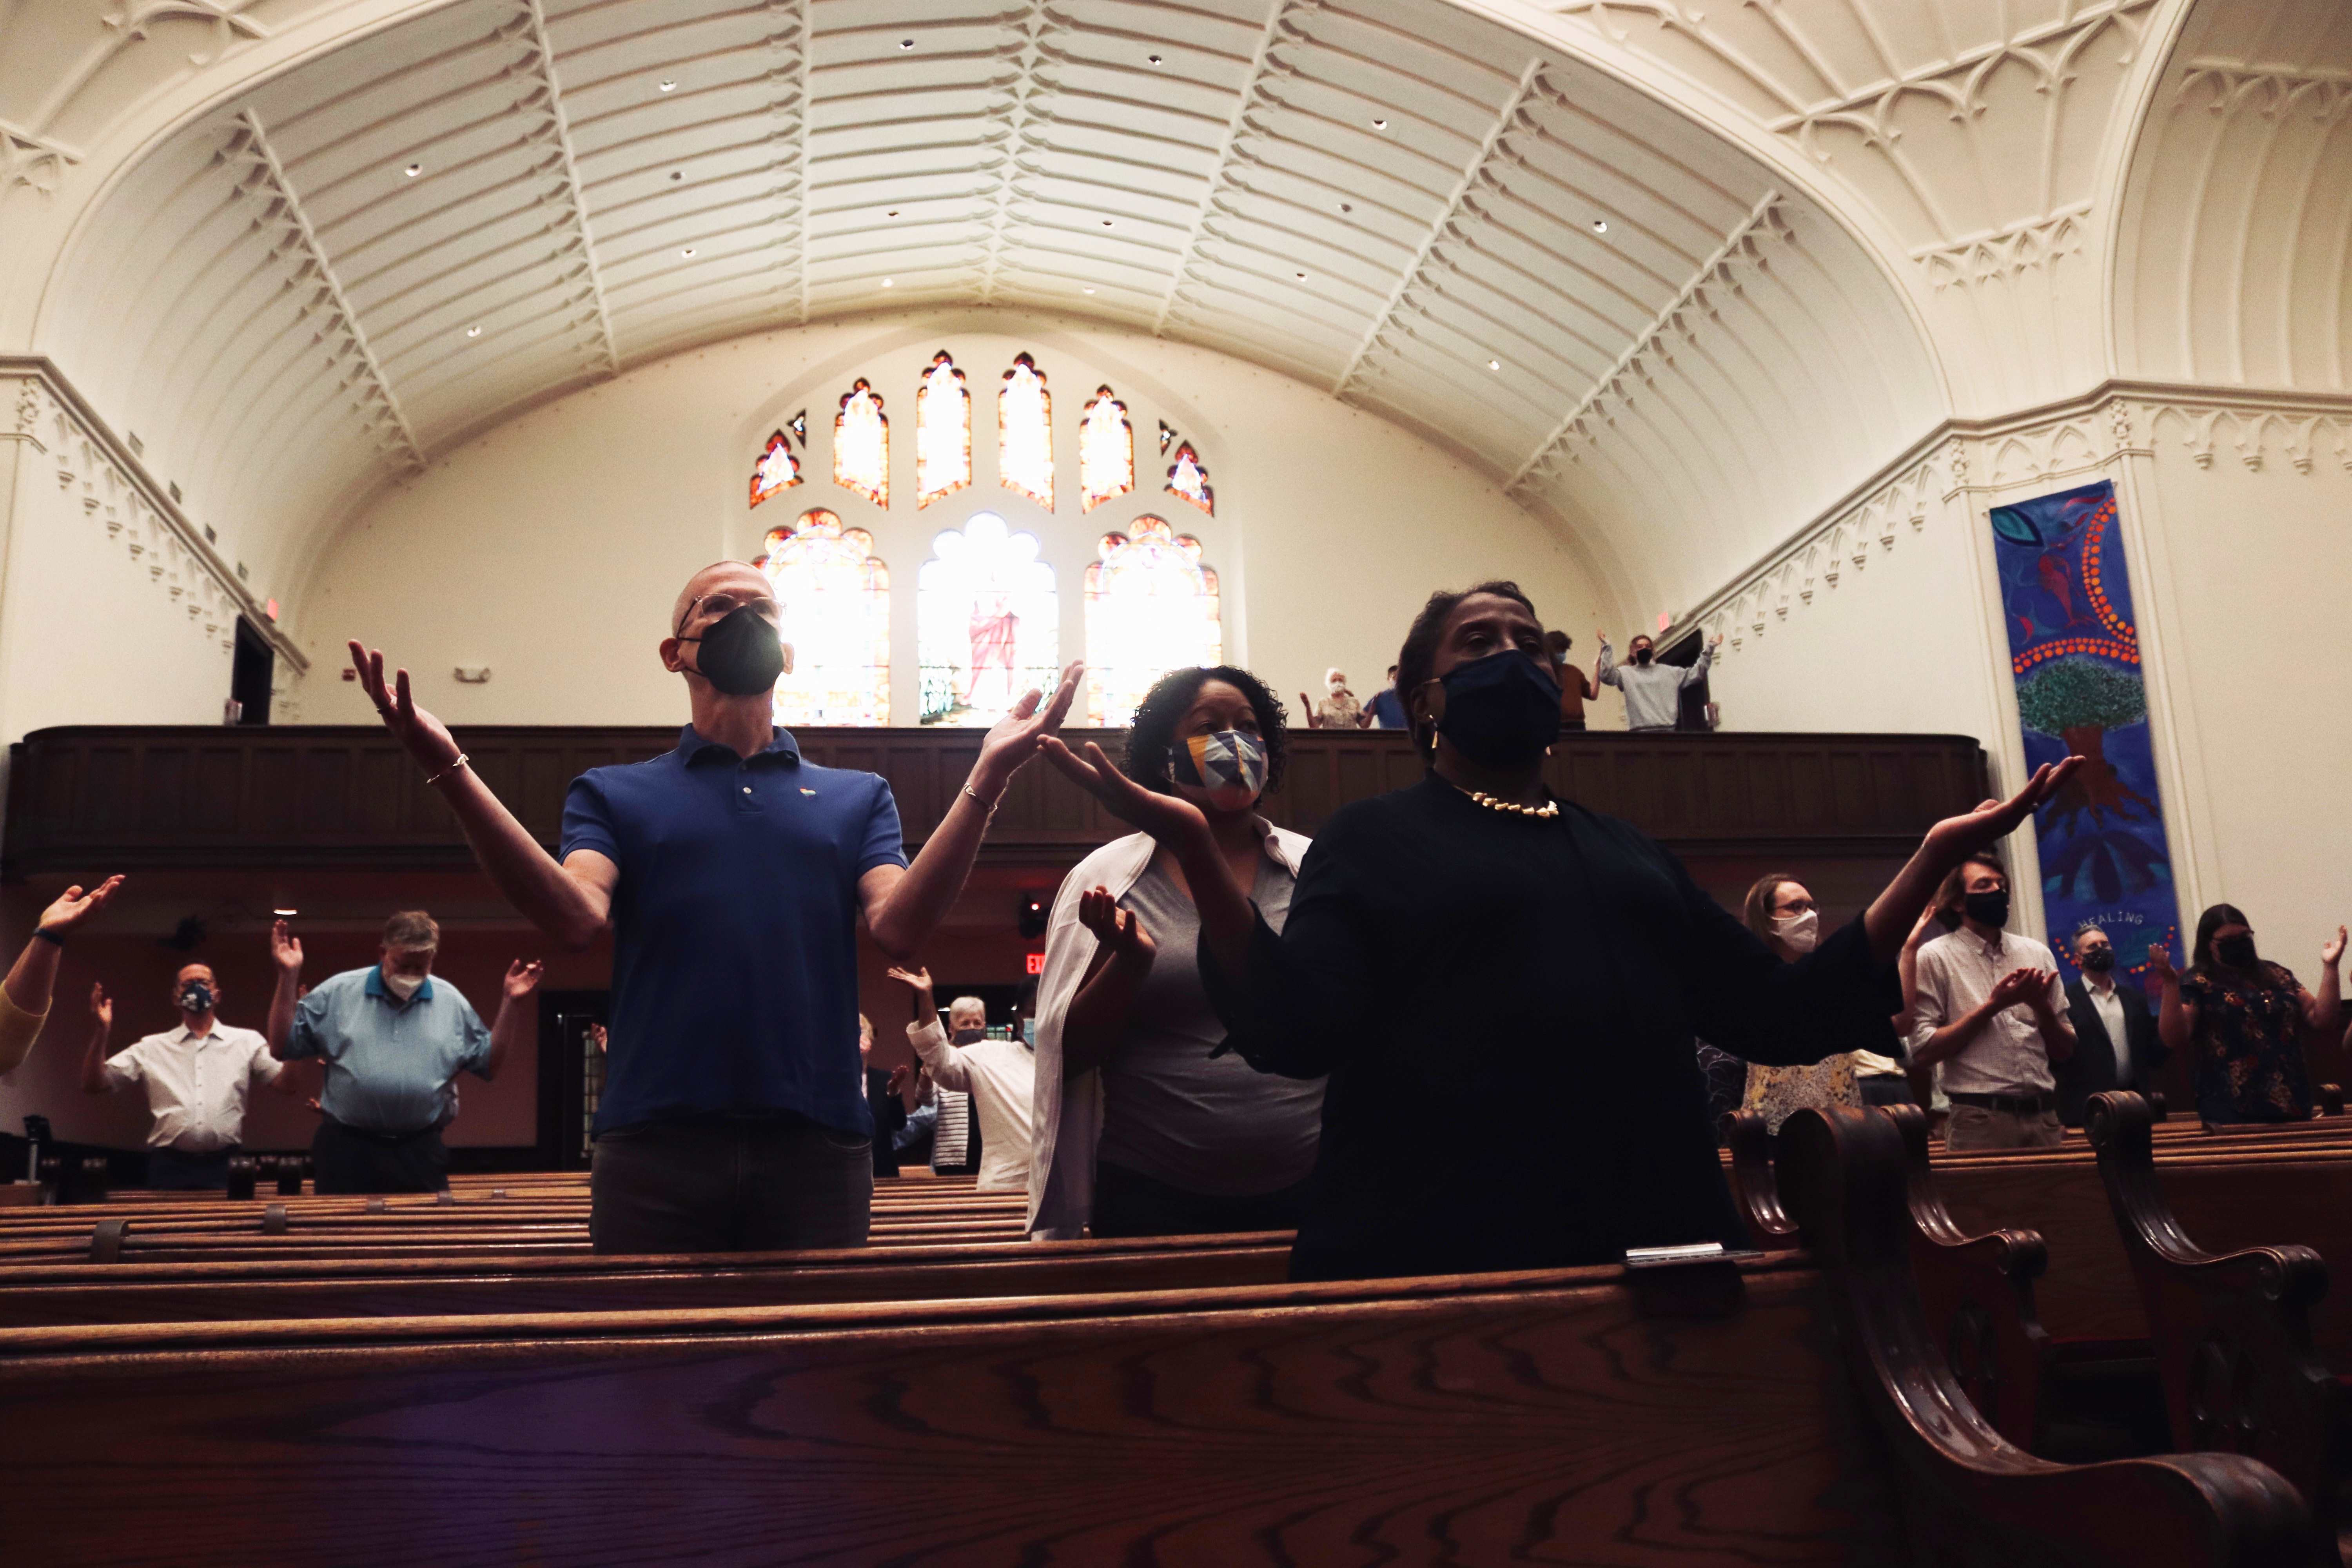 Foundry members and friends worshipping with masks on in our Sanctuary at 16th and P in Washington, D.C.